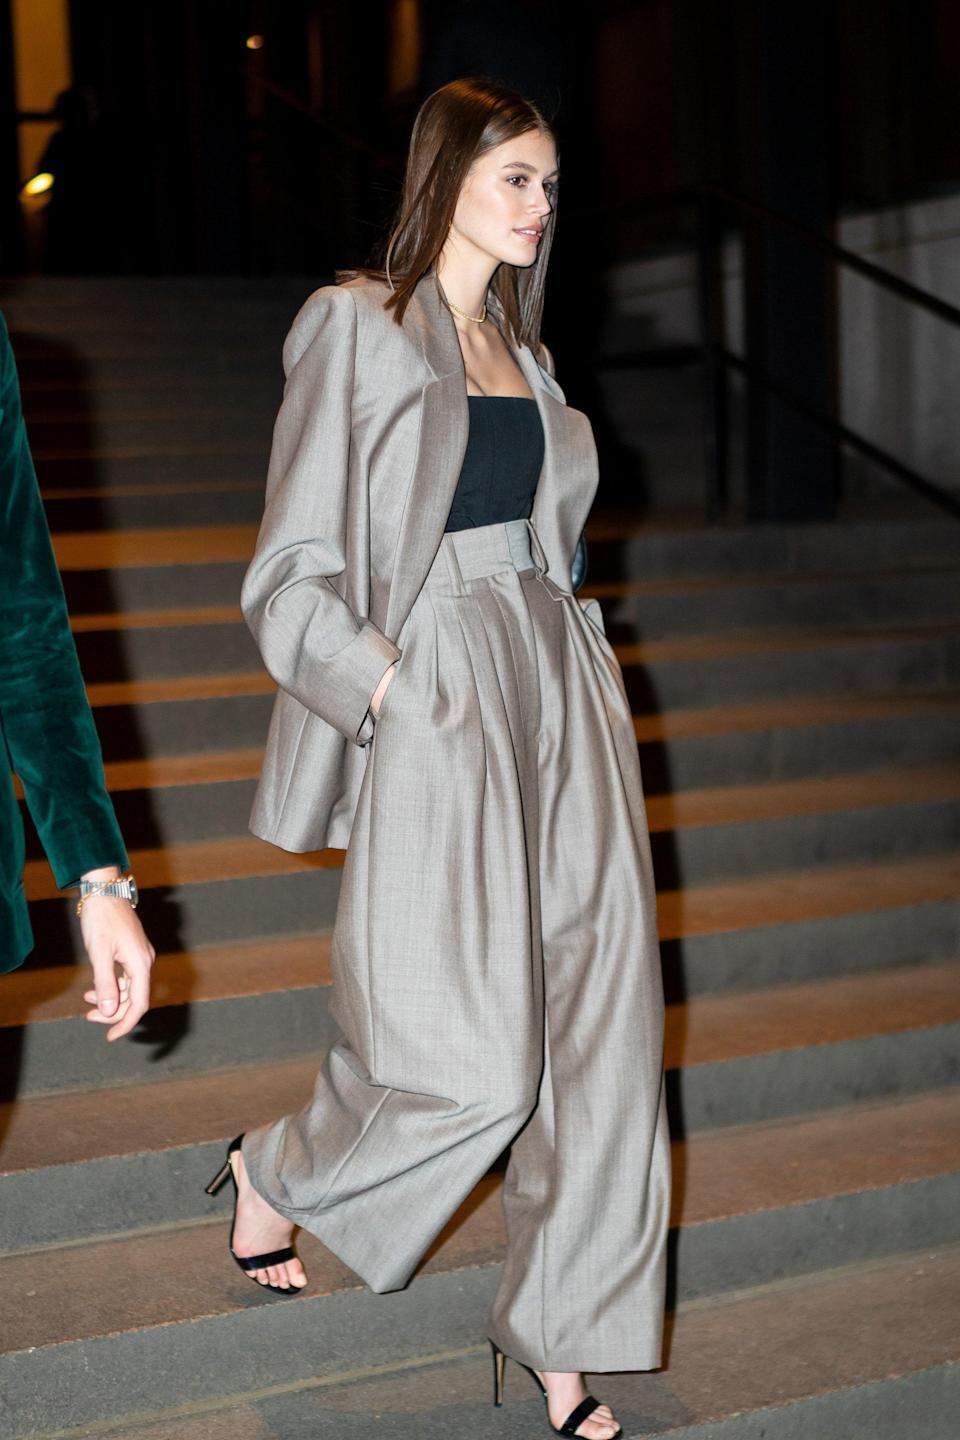 Maxi suits like this one are always a yes, especially when paired with heels.